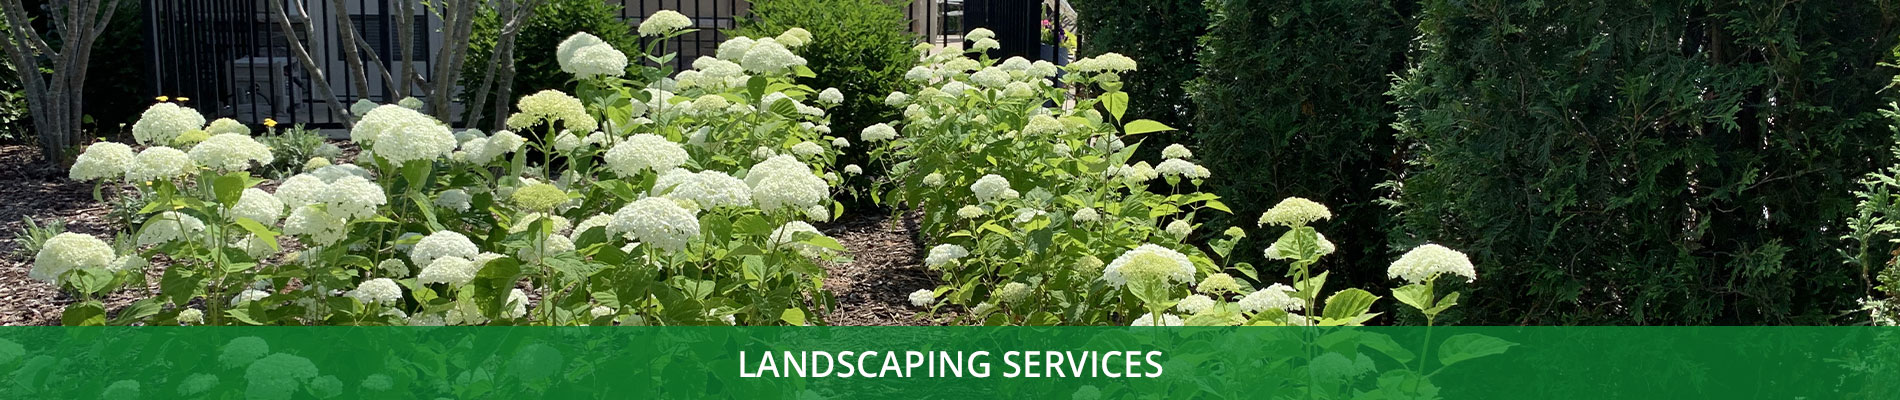 CB-Services-Banners-Landscaping.jpg